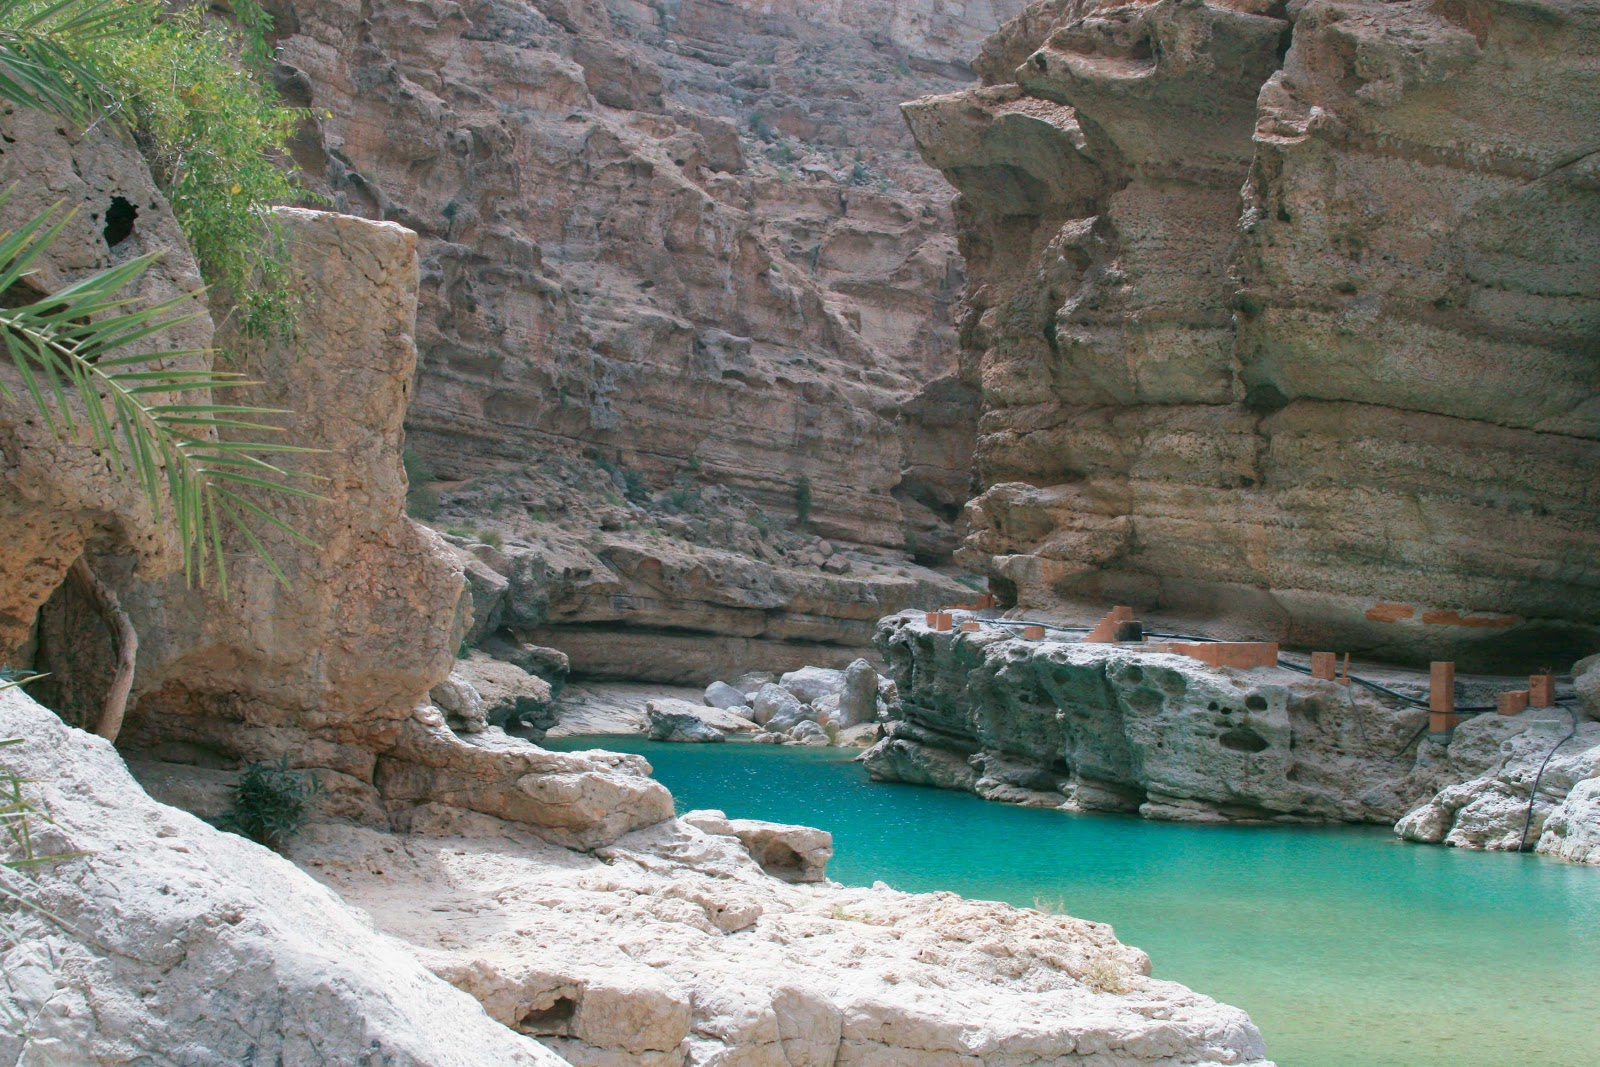 Travel Trip Journey : Wadi Shab Oman